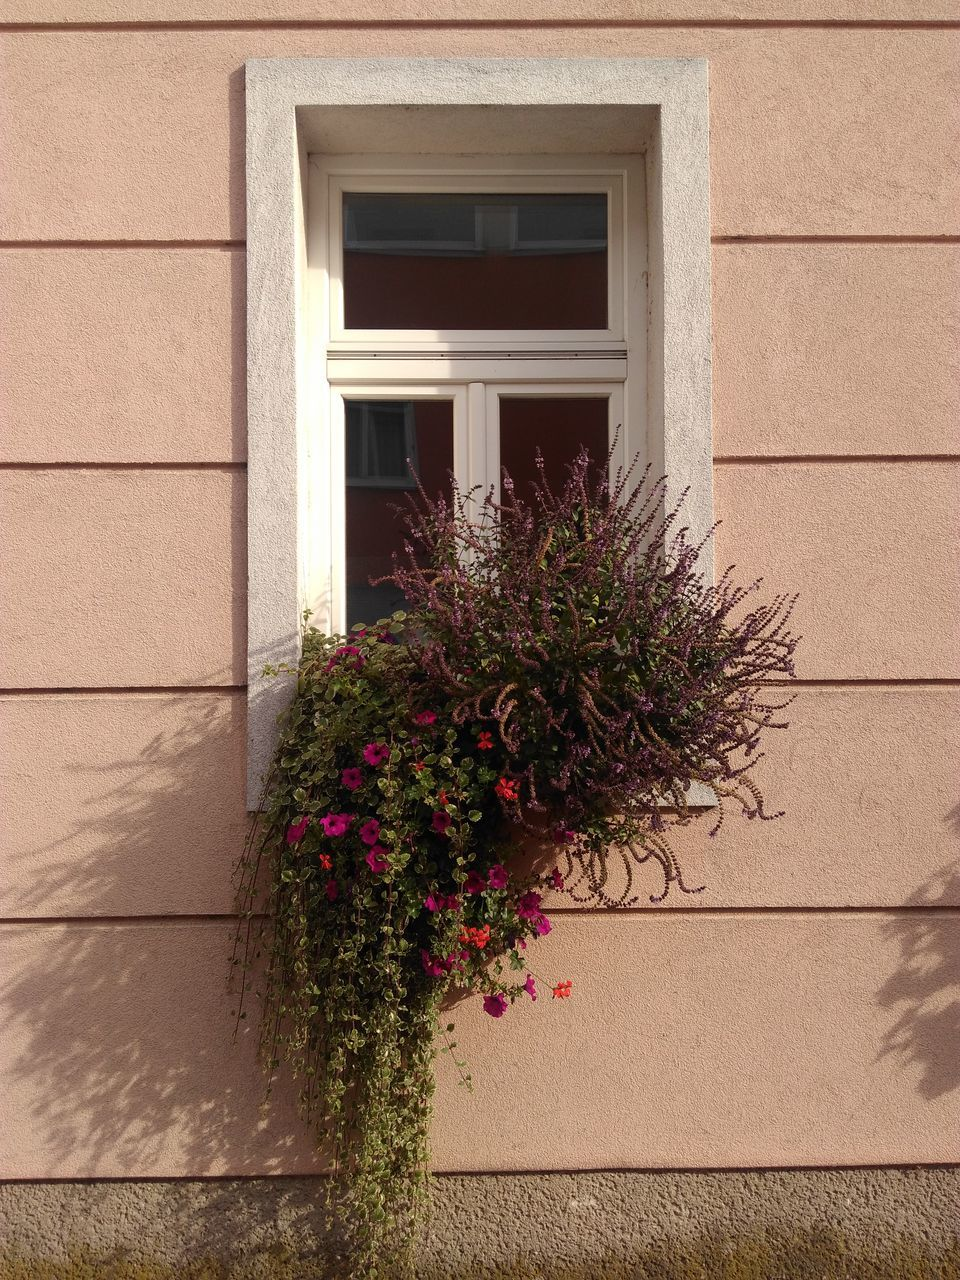 flower, growth, architecture, window, building exterior, plant, built structure, outdoors, nature, no people, window box, day